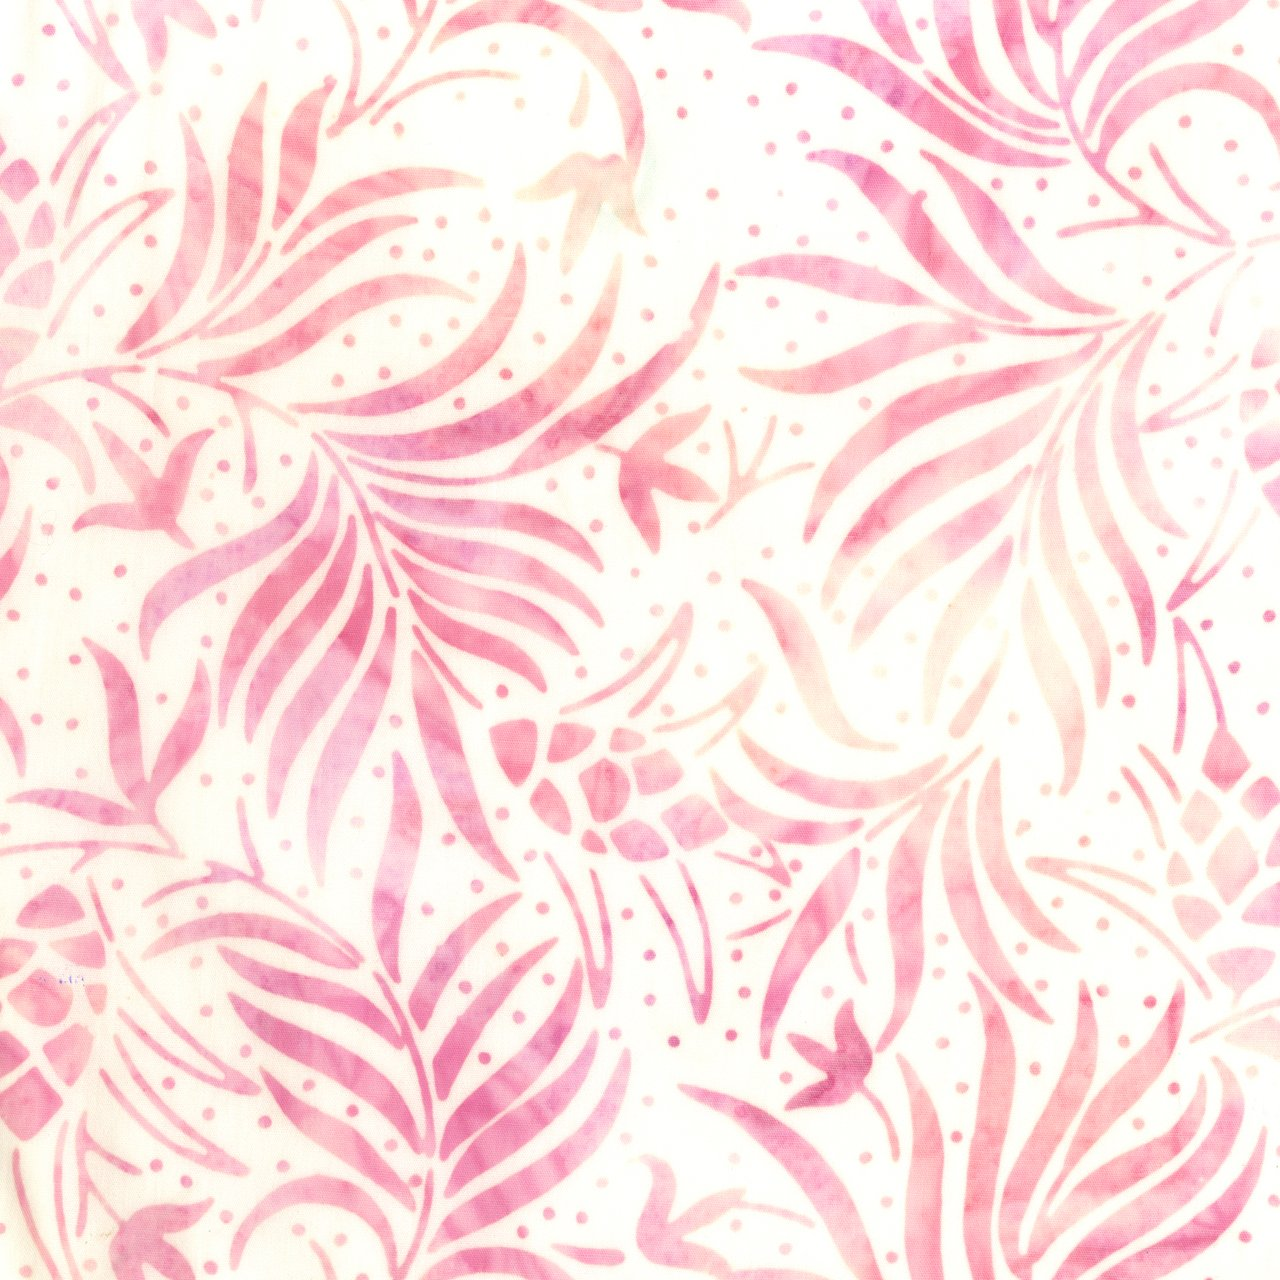 212Q 1 PINK THE RED TREE FOR ANTHOLOGY FABRICS